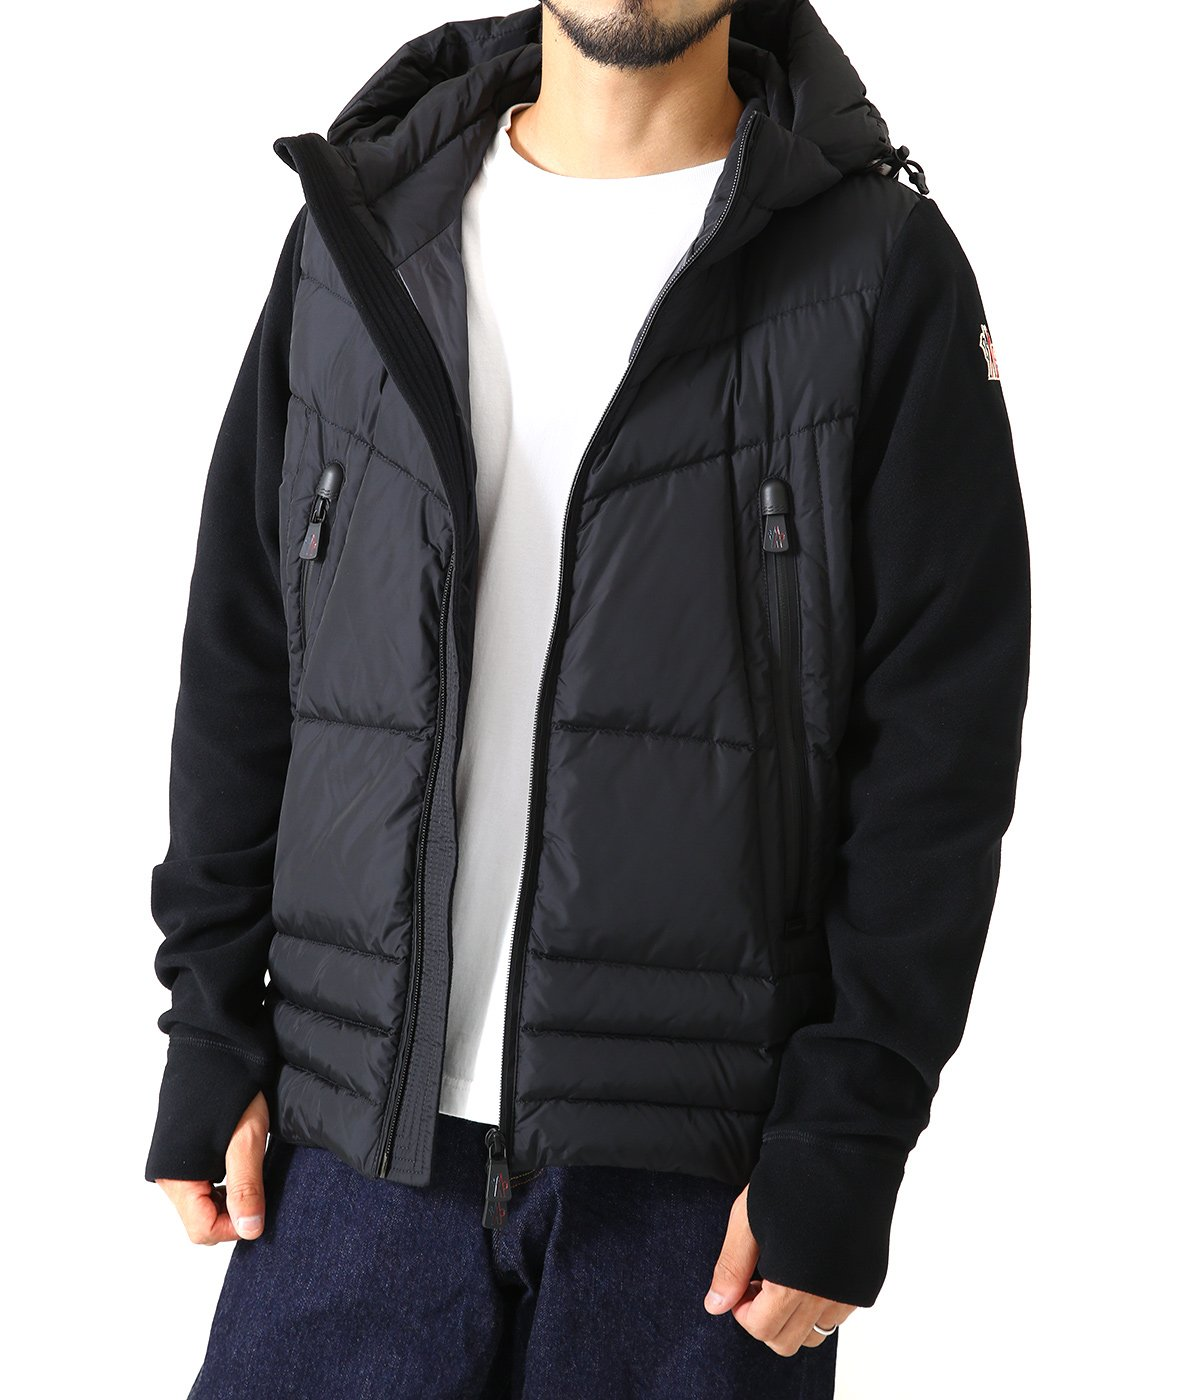 MONCLER GRENOBLE MAGLIA CARDIGAN